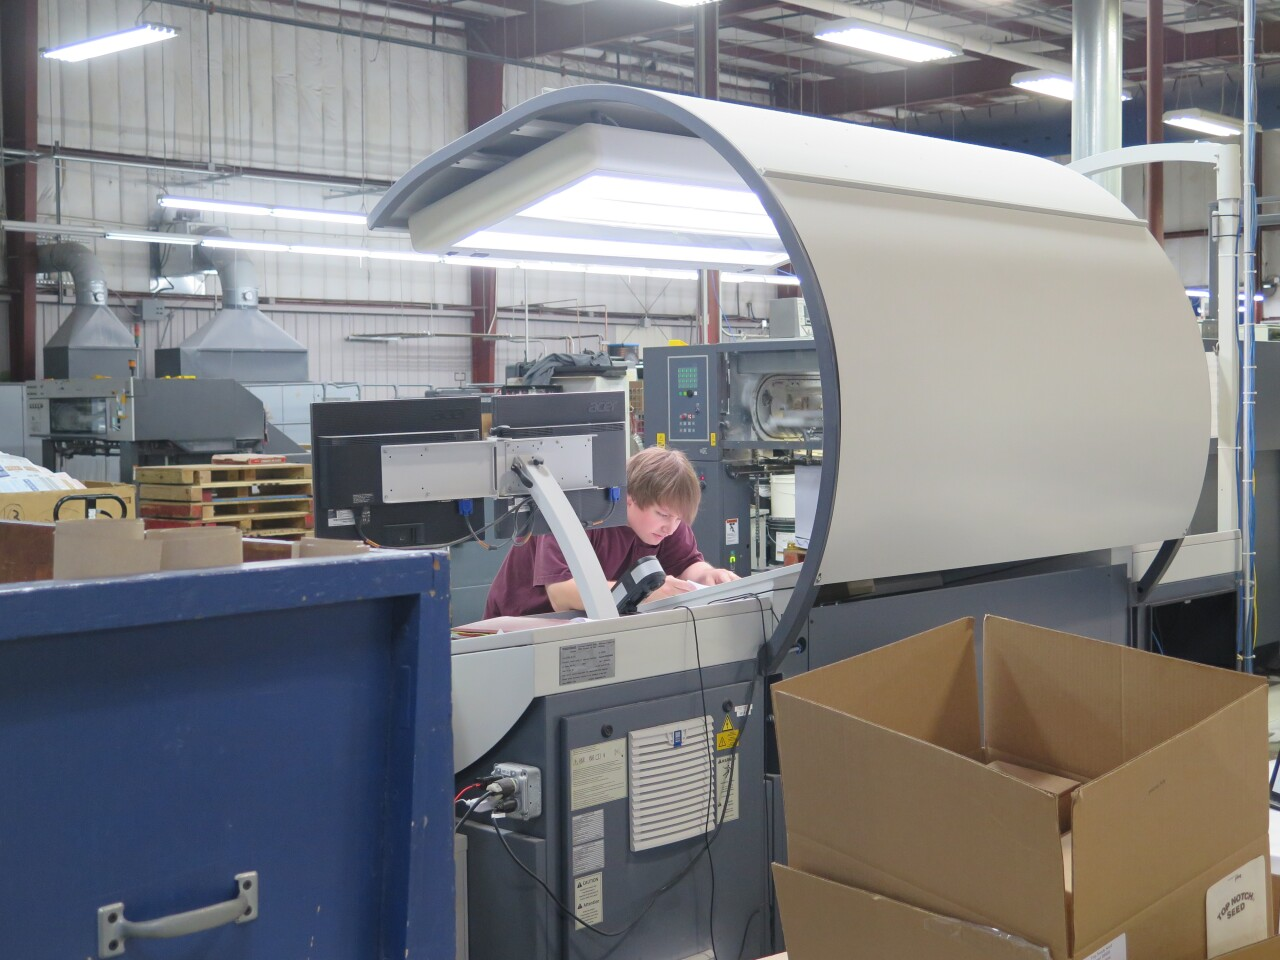 An employee works on a printing machine at JBM Packaging in Lebanon, Ohio.